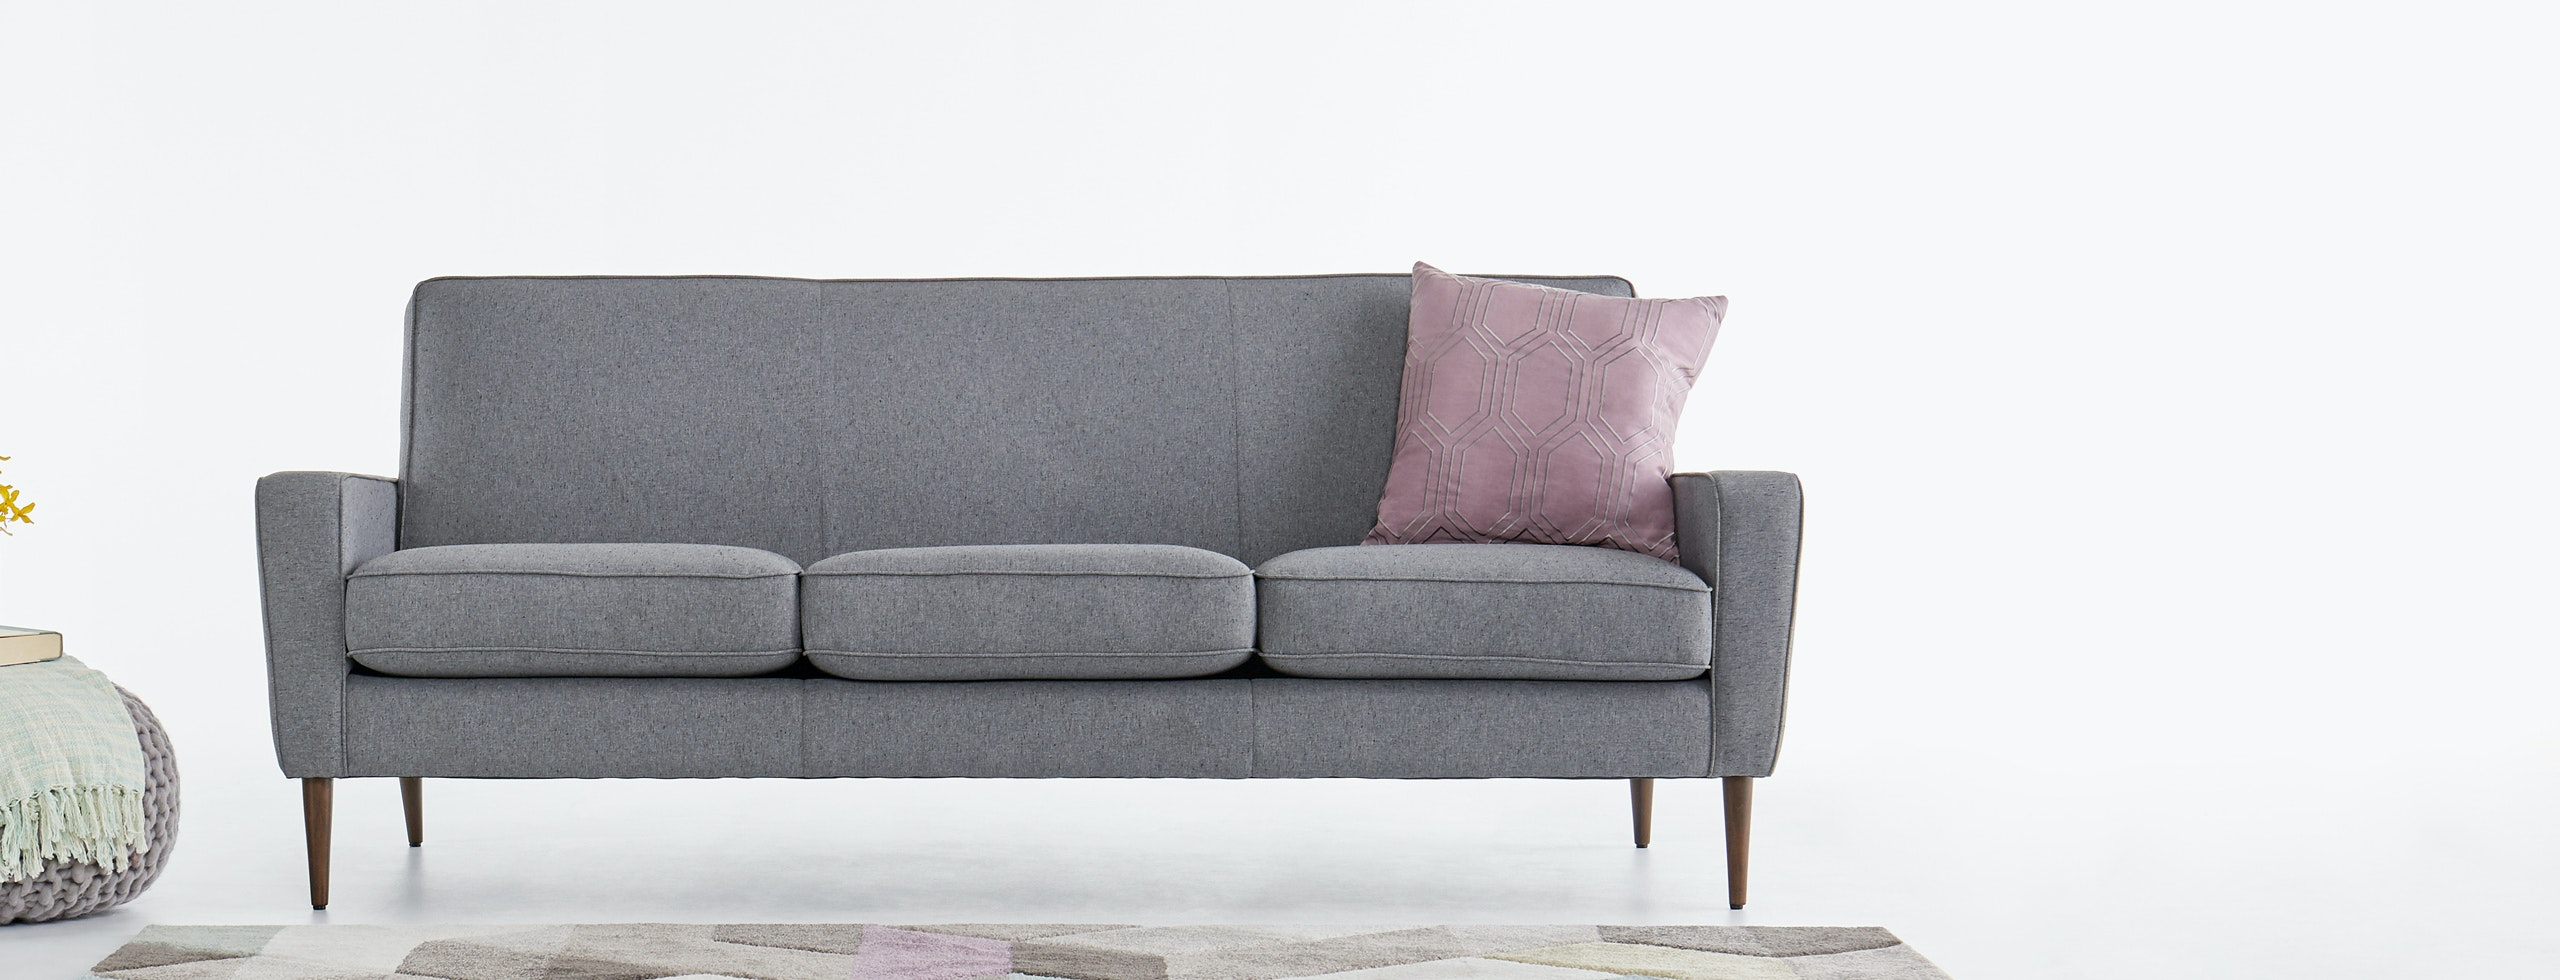 Focus On Furniture Sofa Bed Winslow 84